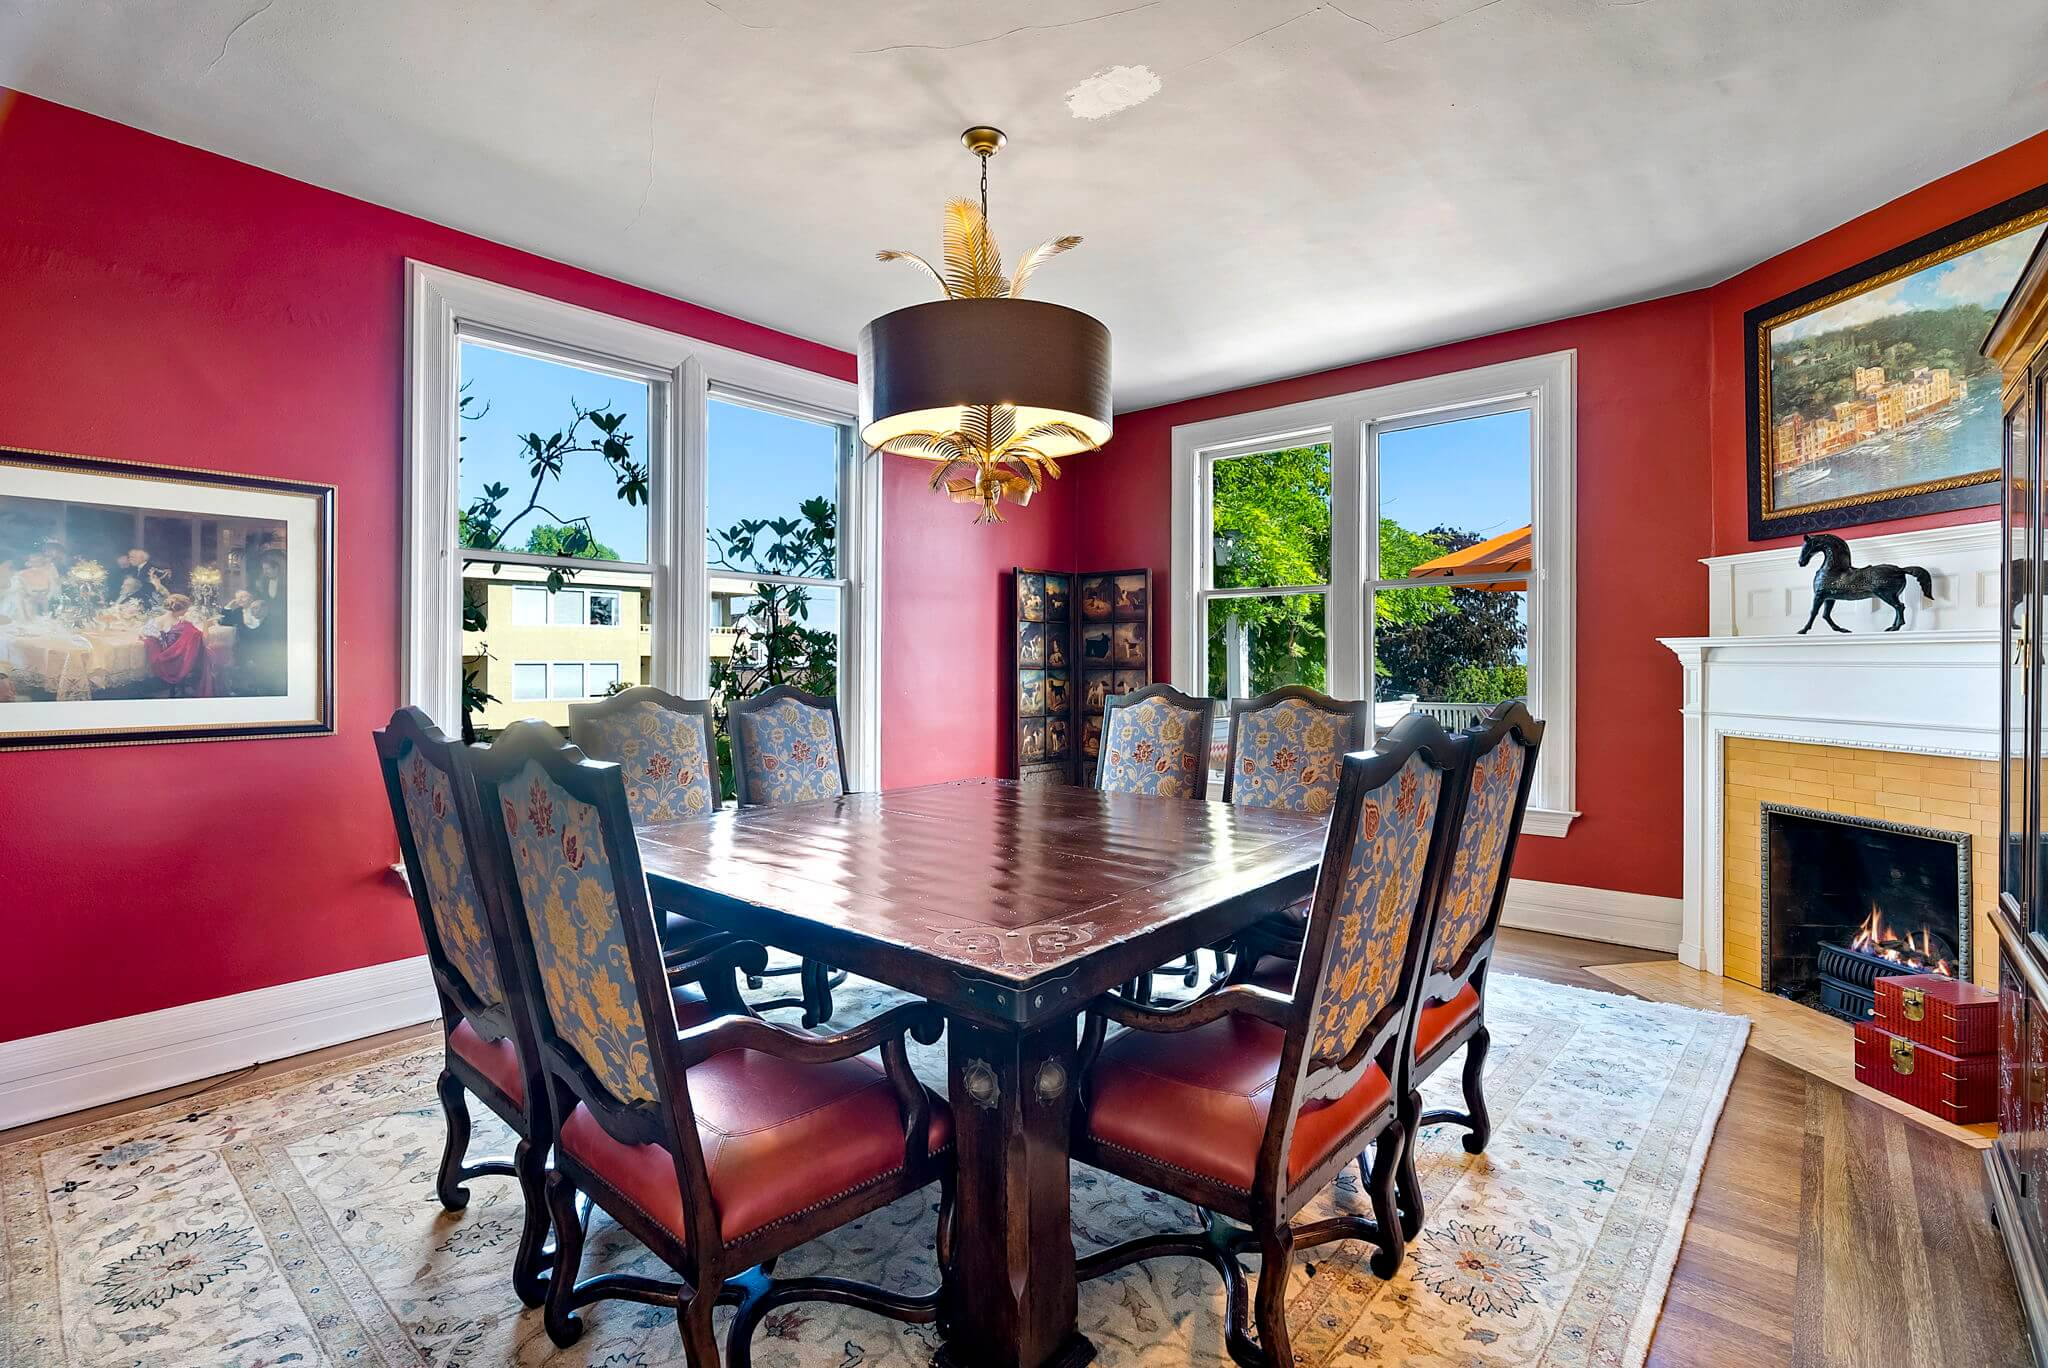 Spacious formal dining room with original fireplace